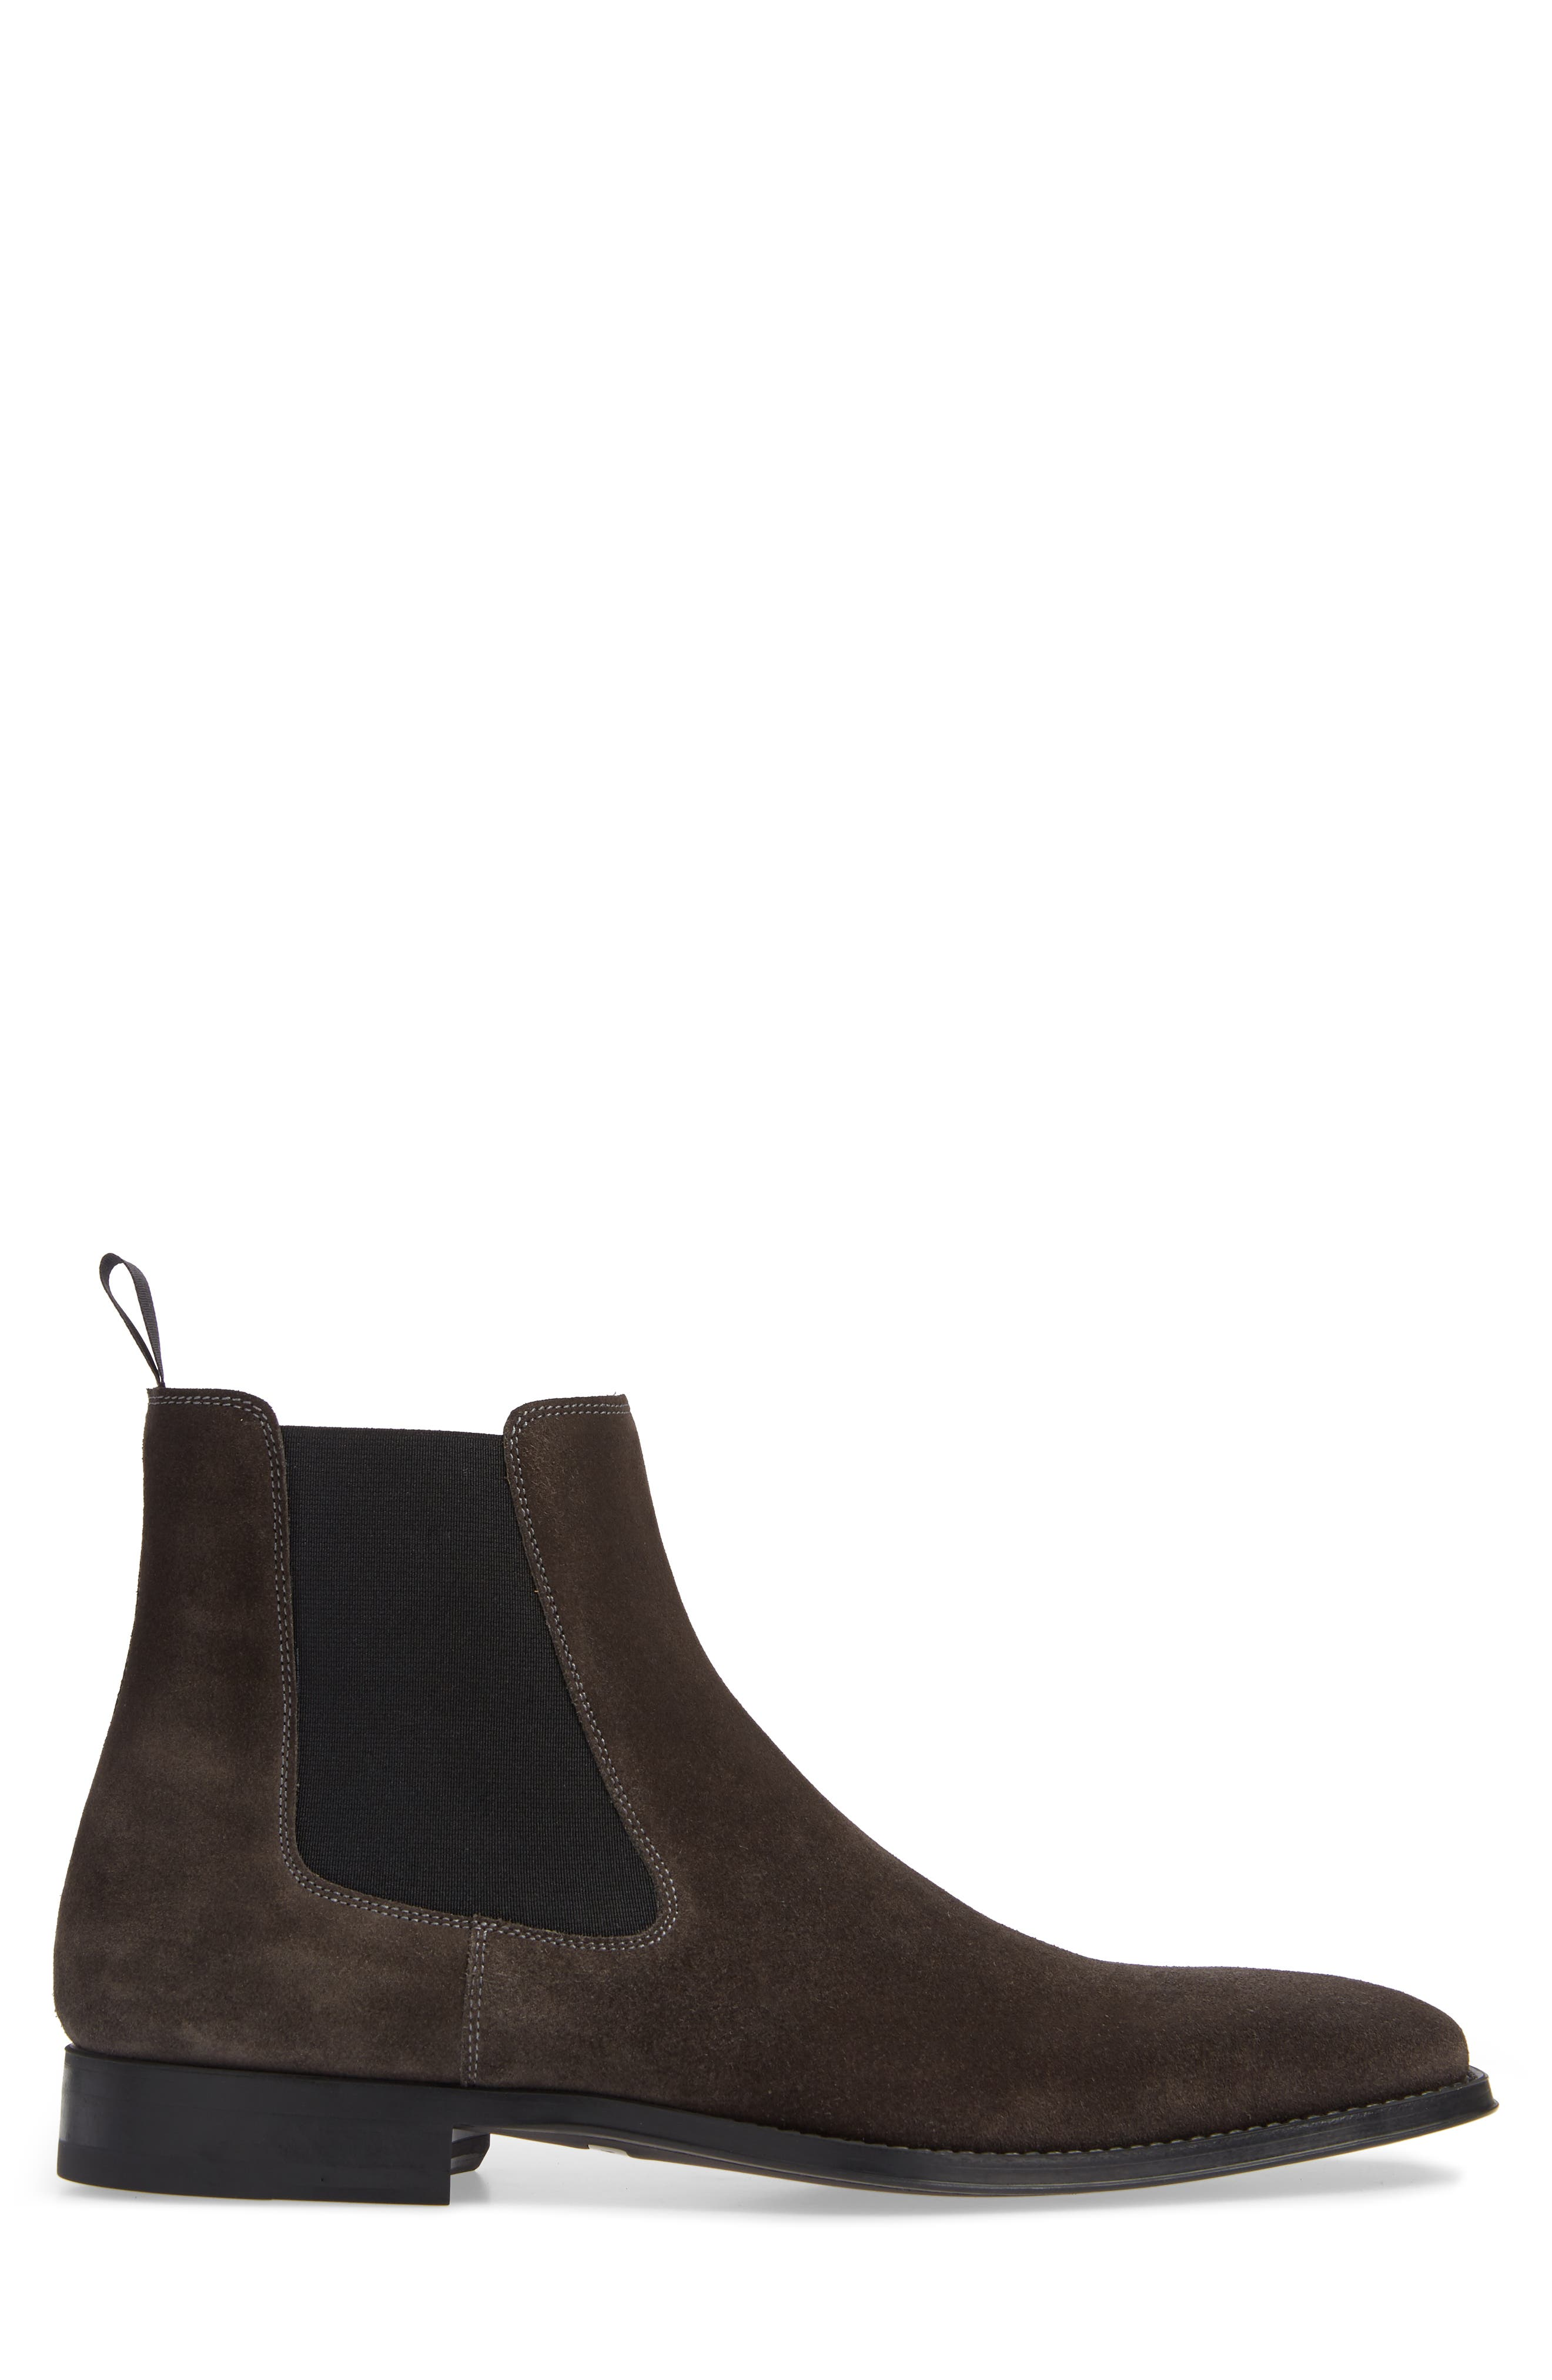 'Sean' Chelsea Boot,                             Alternate thumbnail 3, color,                             GREY LEATHER